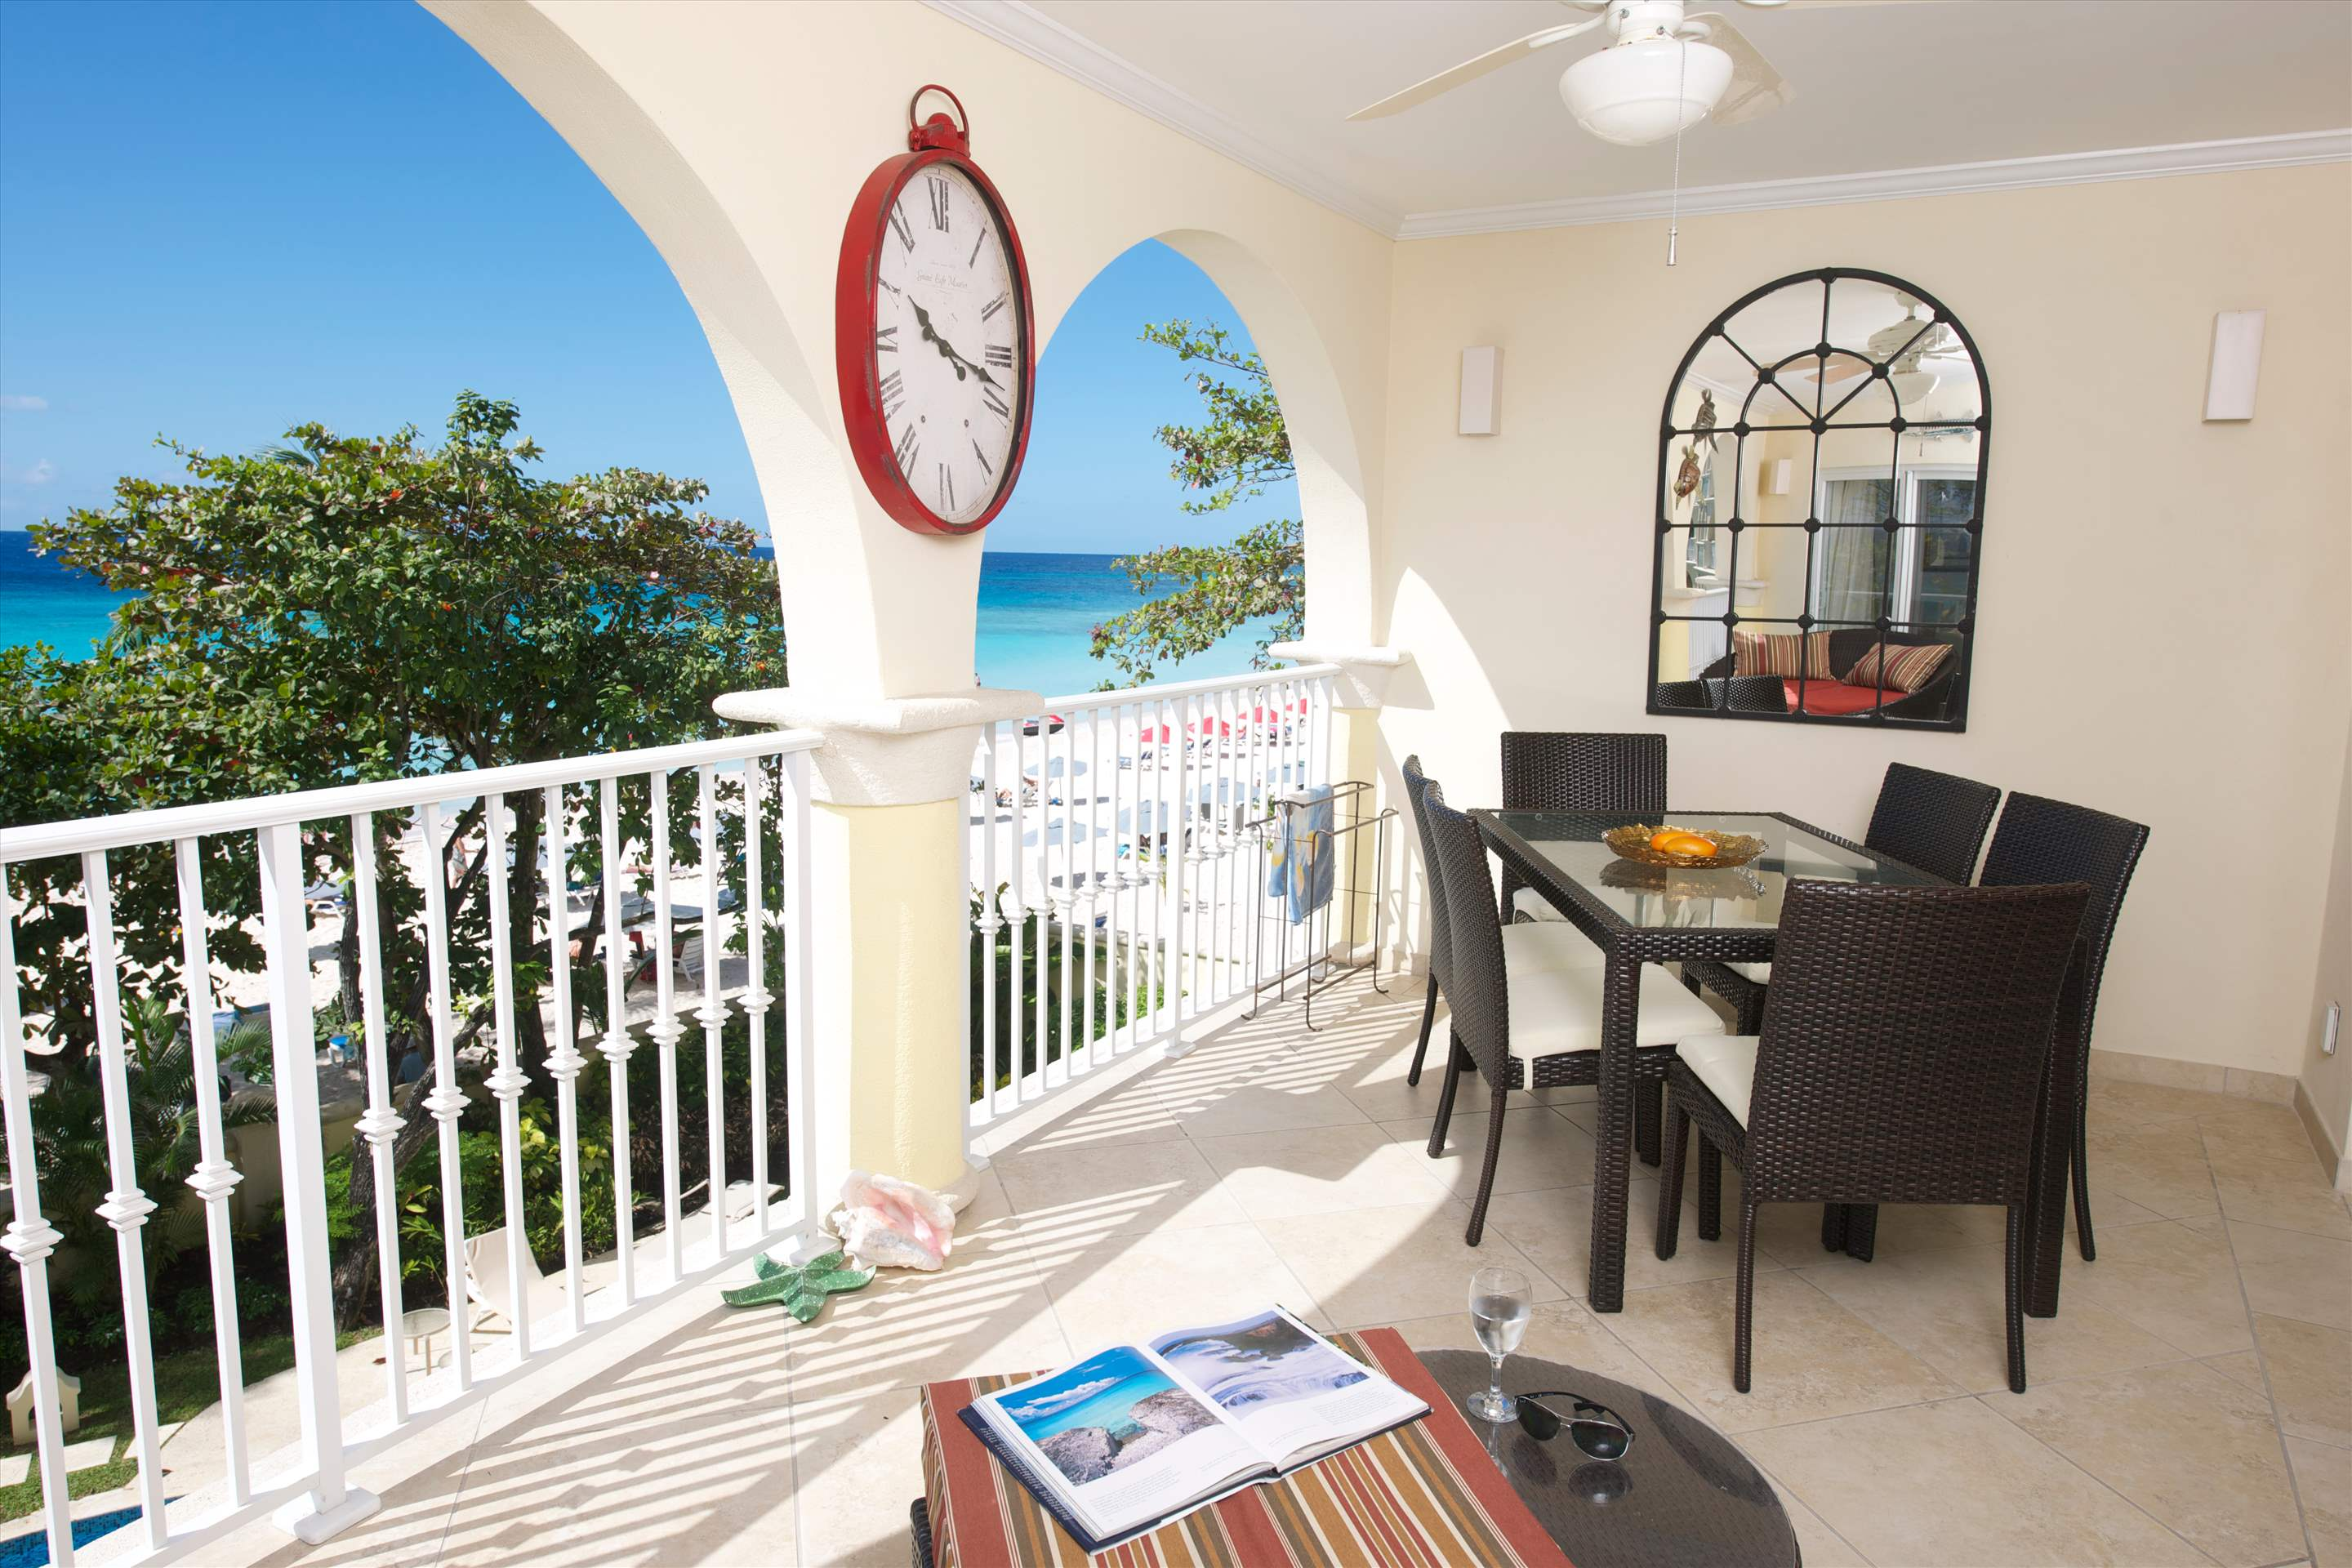 Sapphire Beach 203, 2 bedroom, 3 bedroom apartment in St. Lawrence Gap & South Coast, Barbados Photo #3